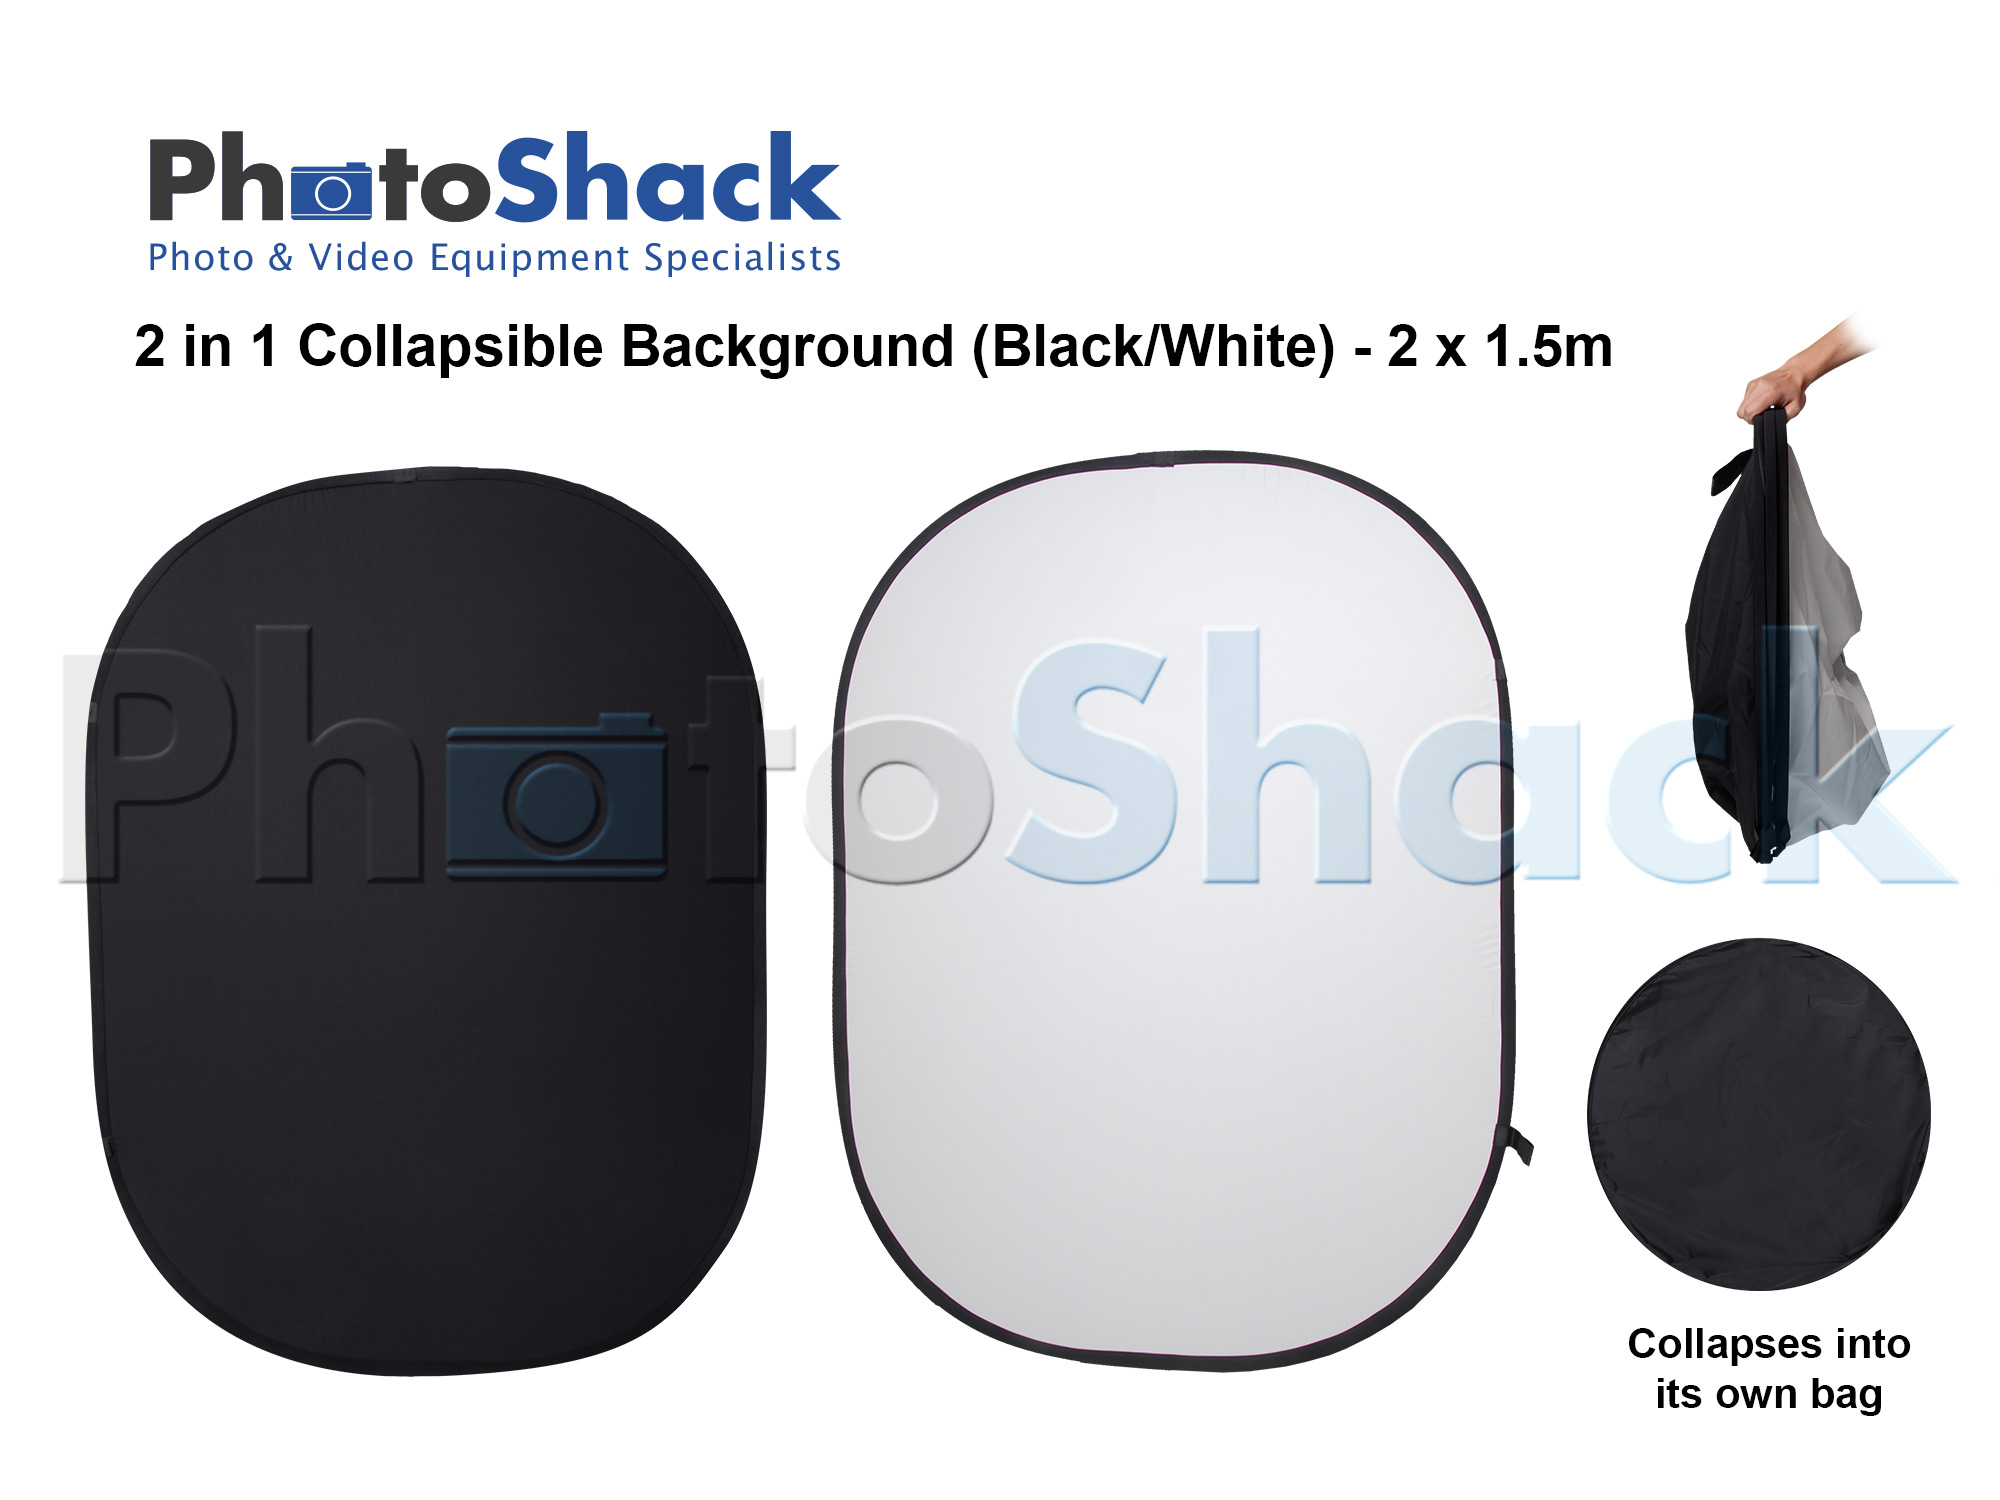 Black / White Collapsible Background & Reflector